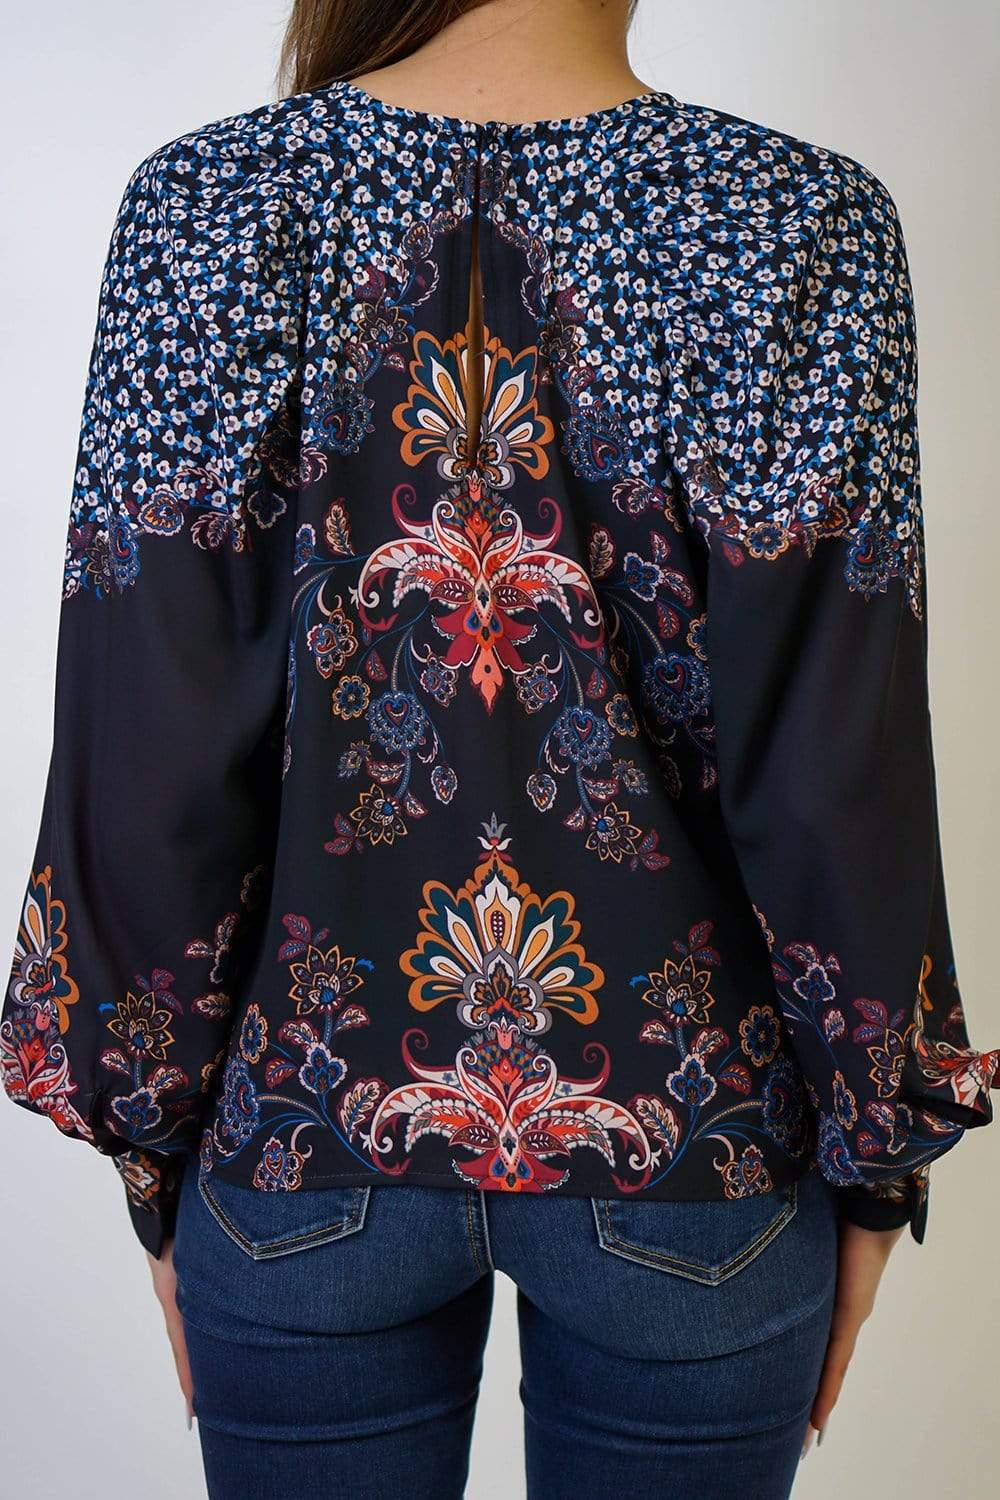 TOPS Black Paisley Floral Top - Chloe Dao